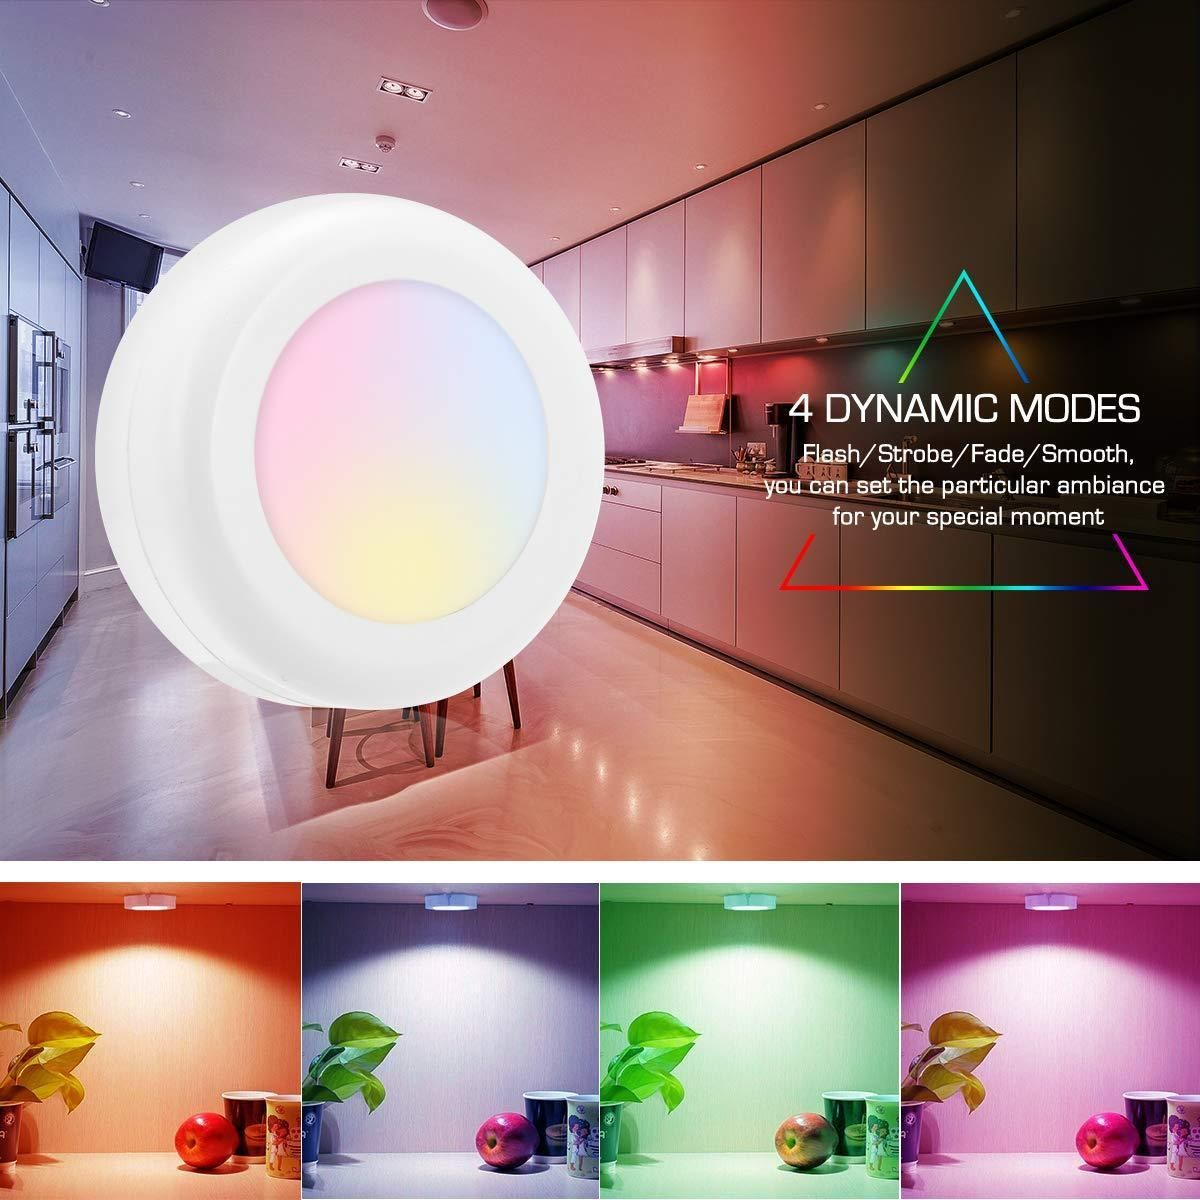 Colourchanging remotecontrolled led wirelessbuy 7 get 4